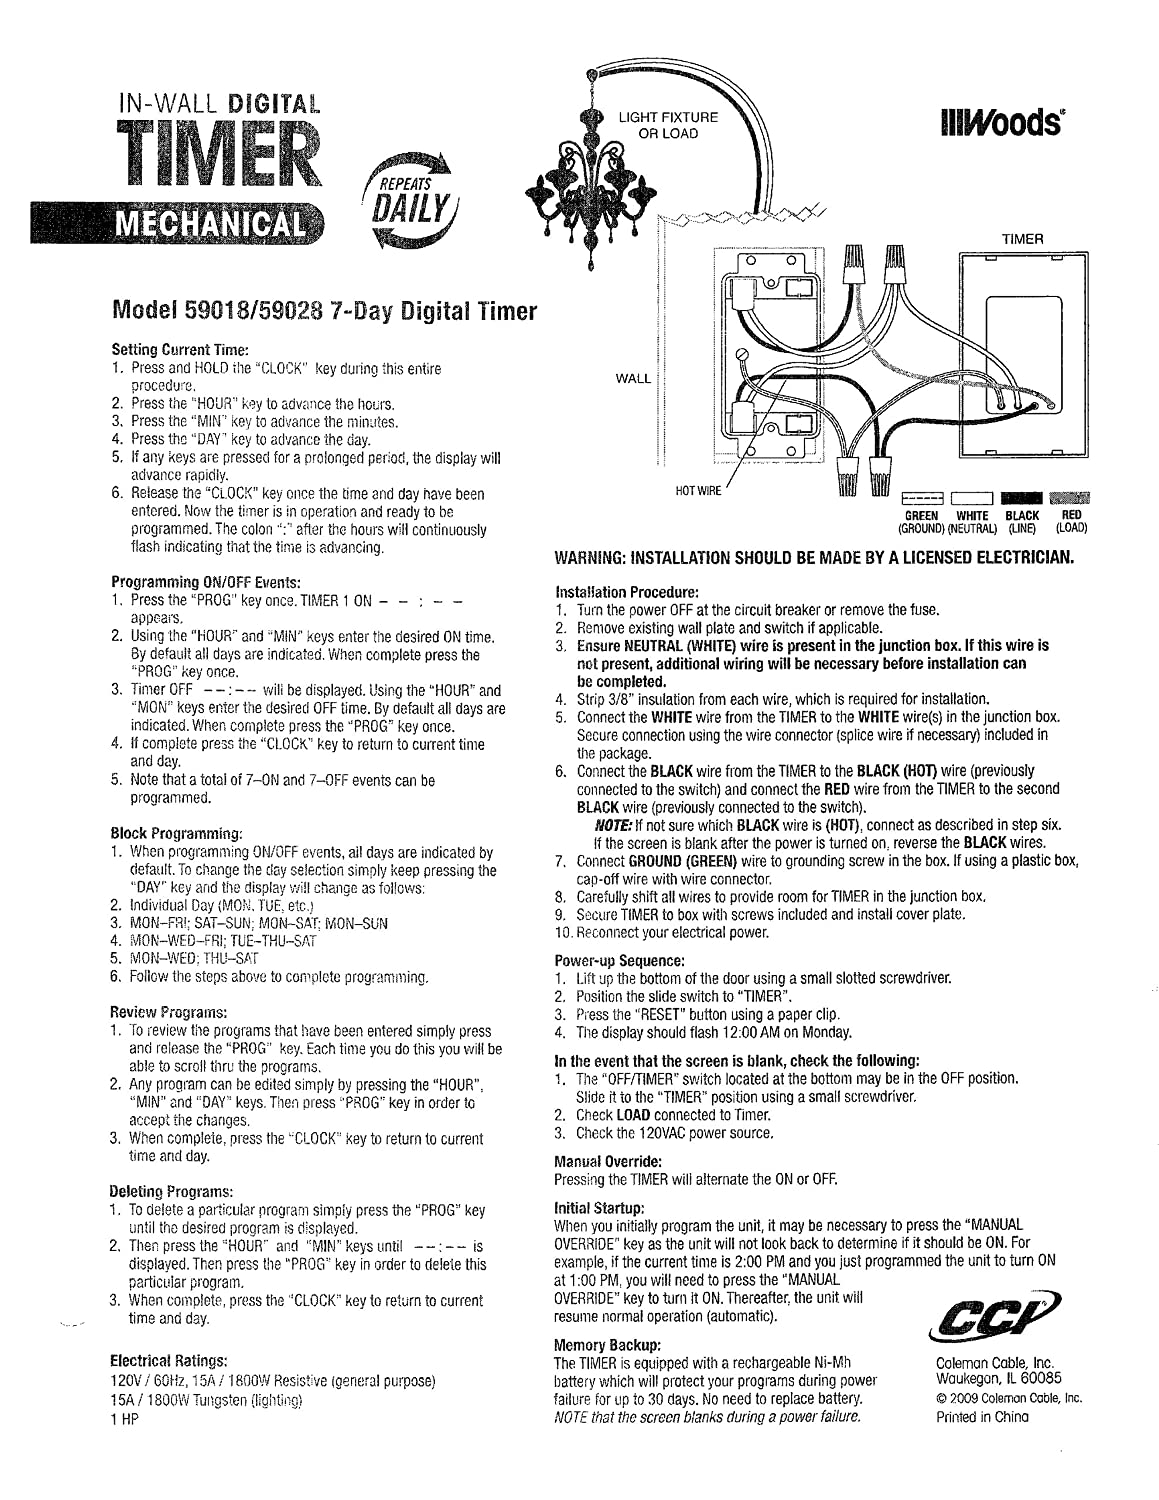 Woods 59008 Timer Wiring Diagram Diagrams 11 Pin For 7 Day Programmable Digital 11pin Relay